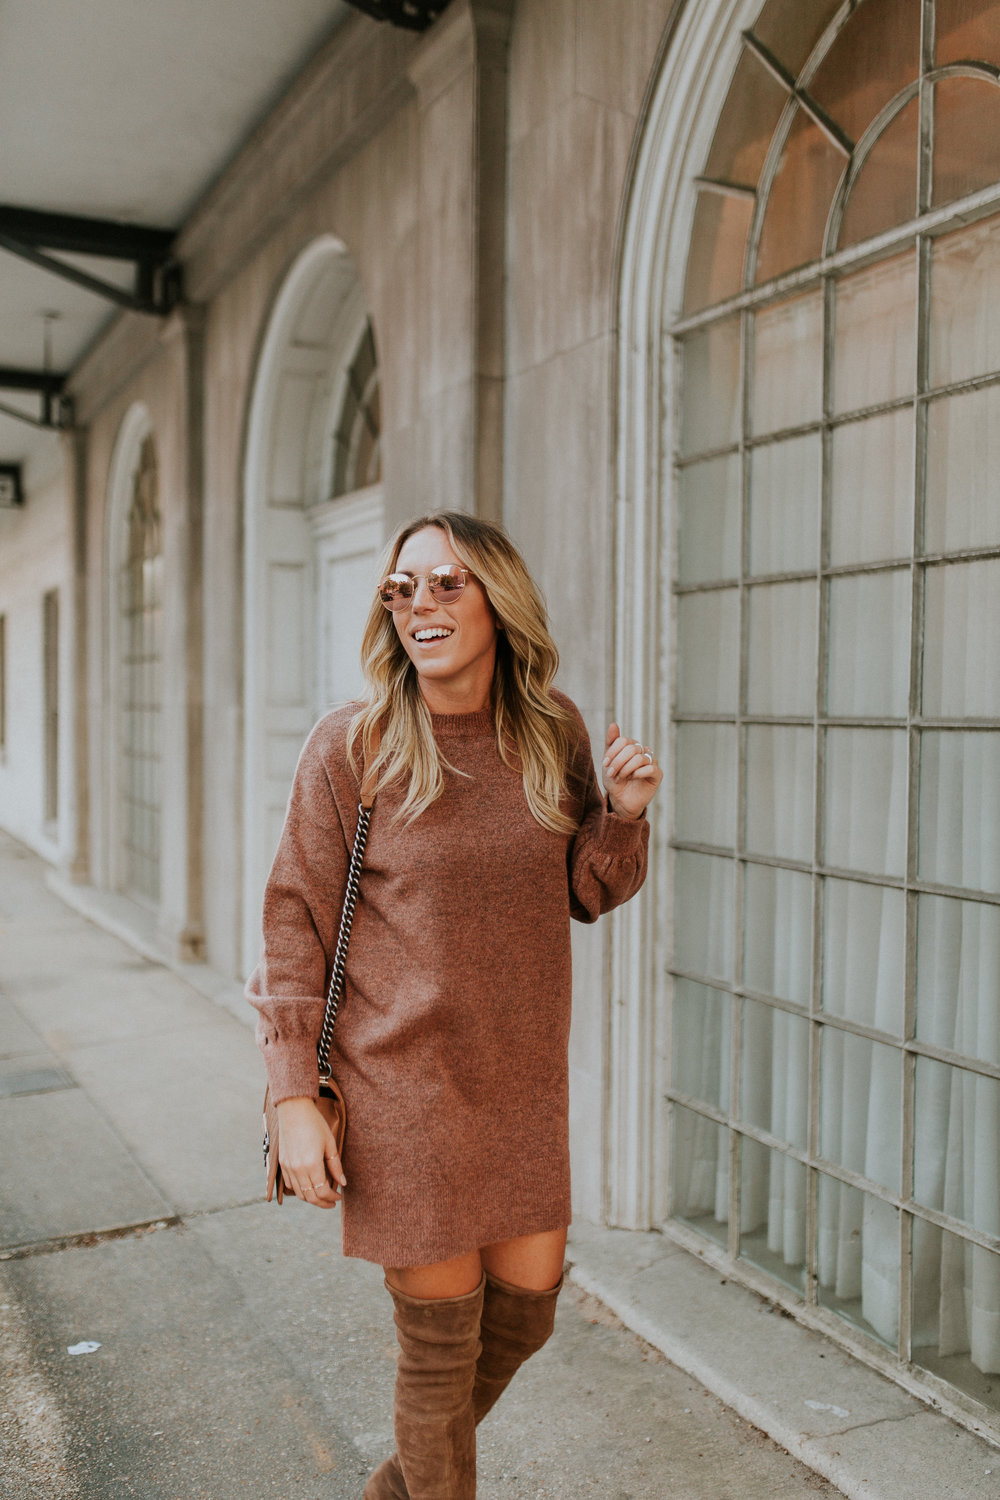 Blogger Gracefully Taylored in Topshop Sweater Dress and Stuart Weitzman Boots(21).jpg